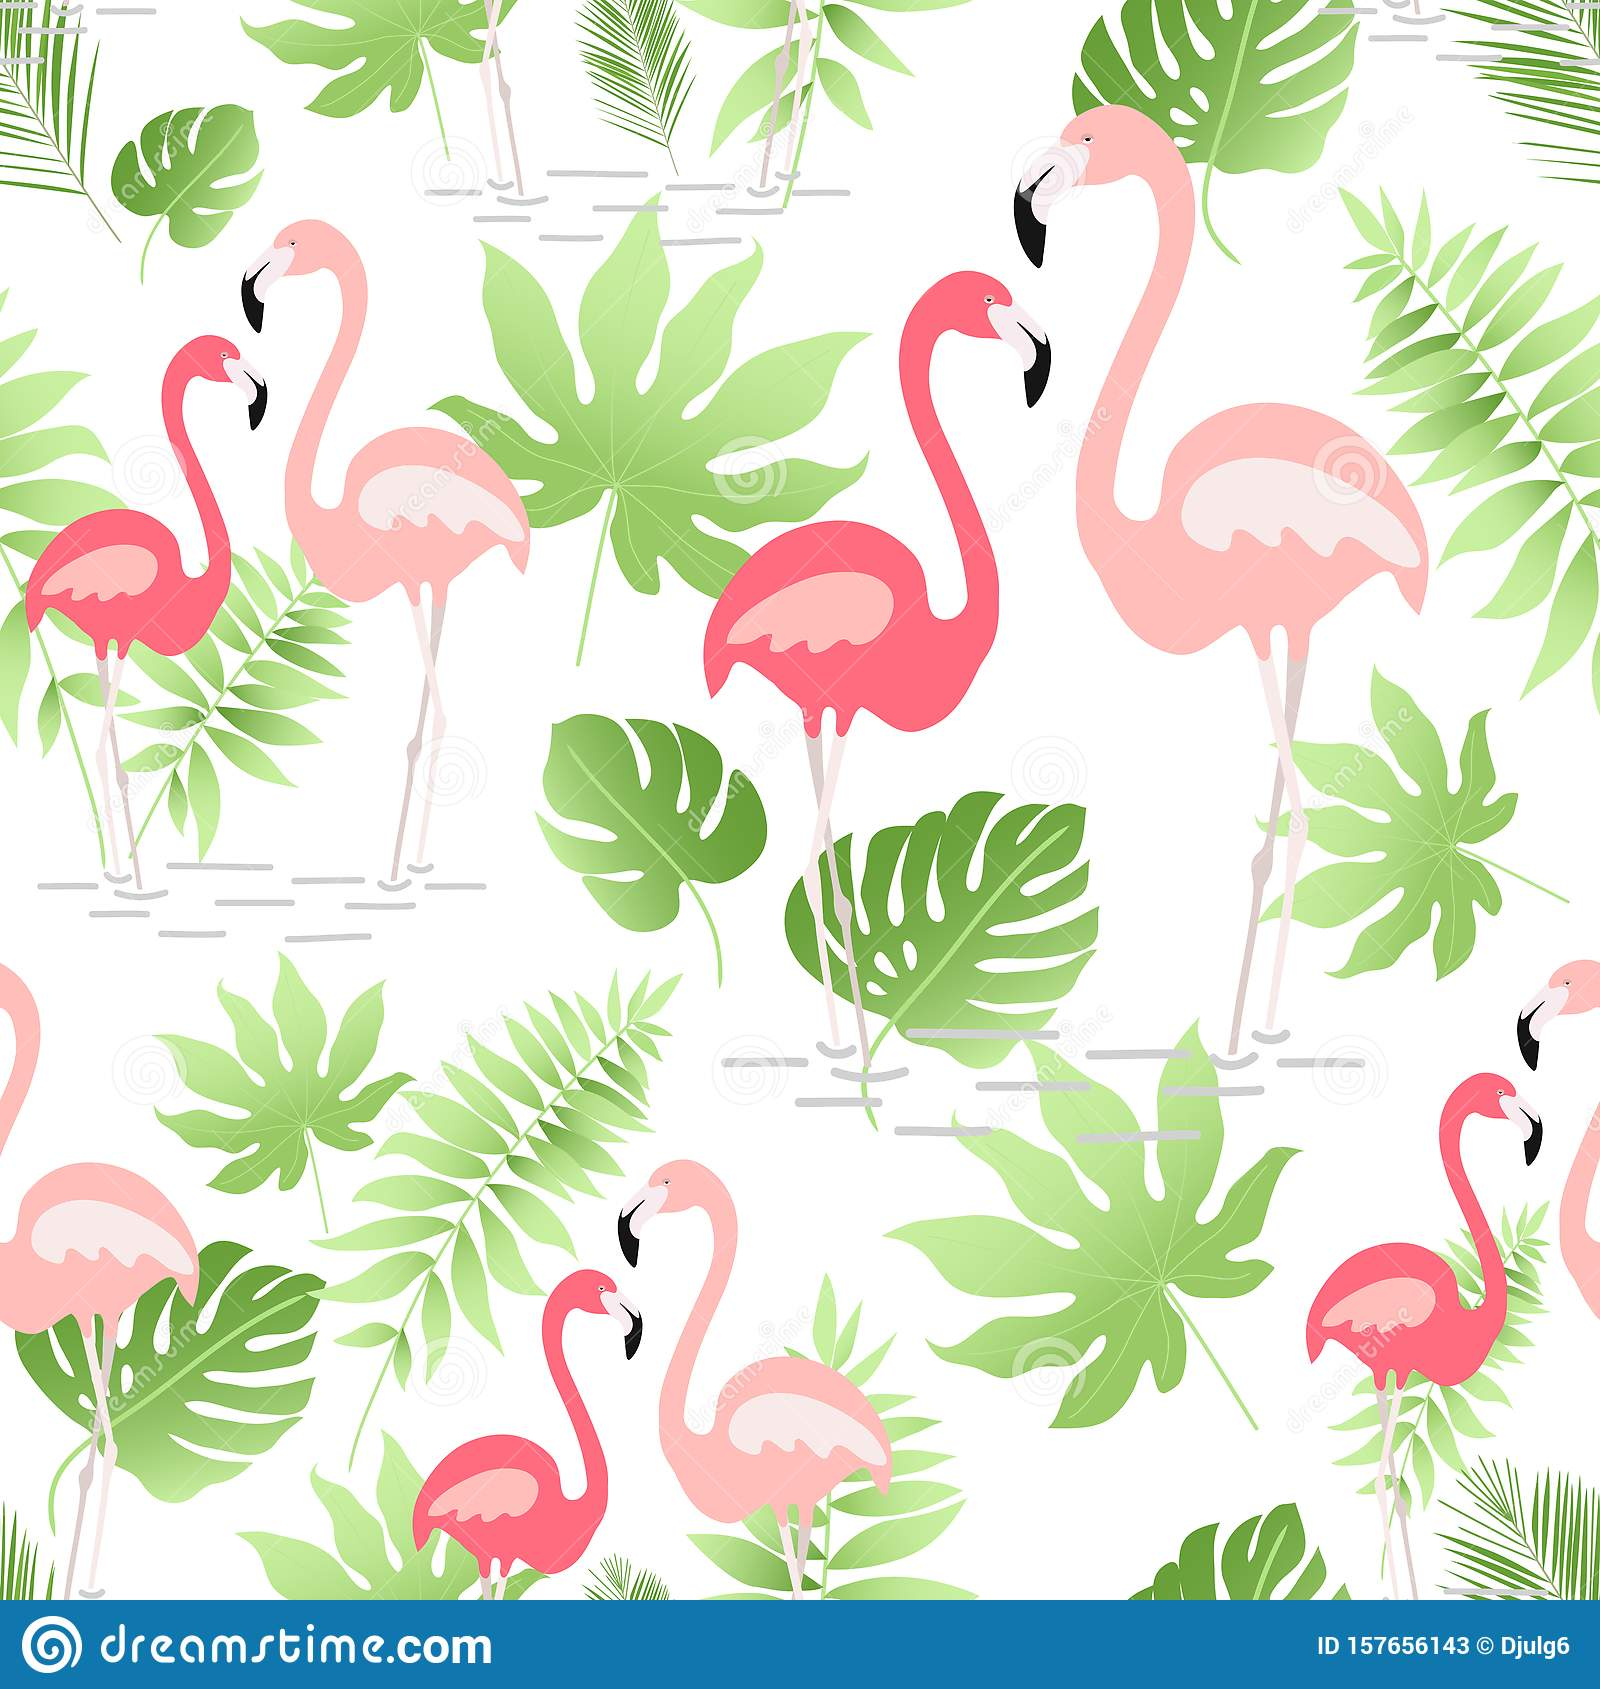 A seamless pattern with hand drawn a pink flamingo and tropical leaves - Vector